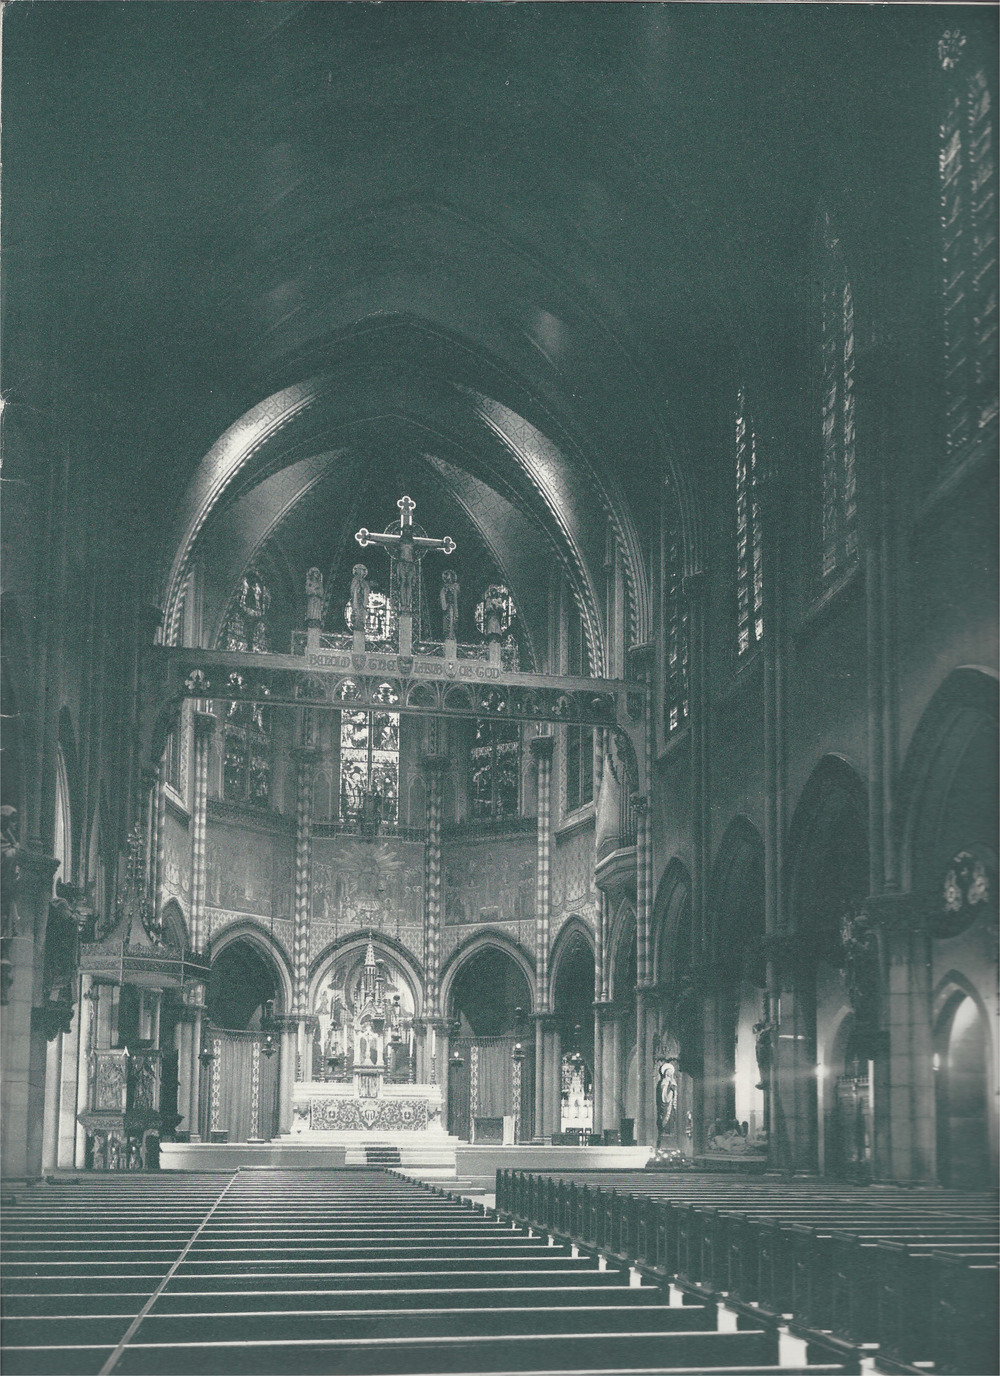 The interior of Saint Mary's in the 1950s